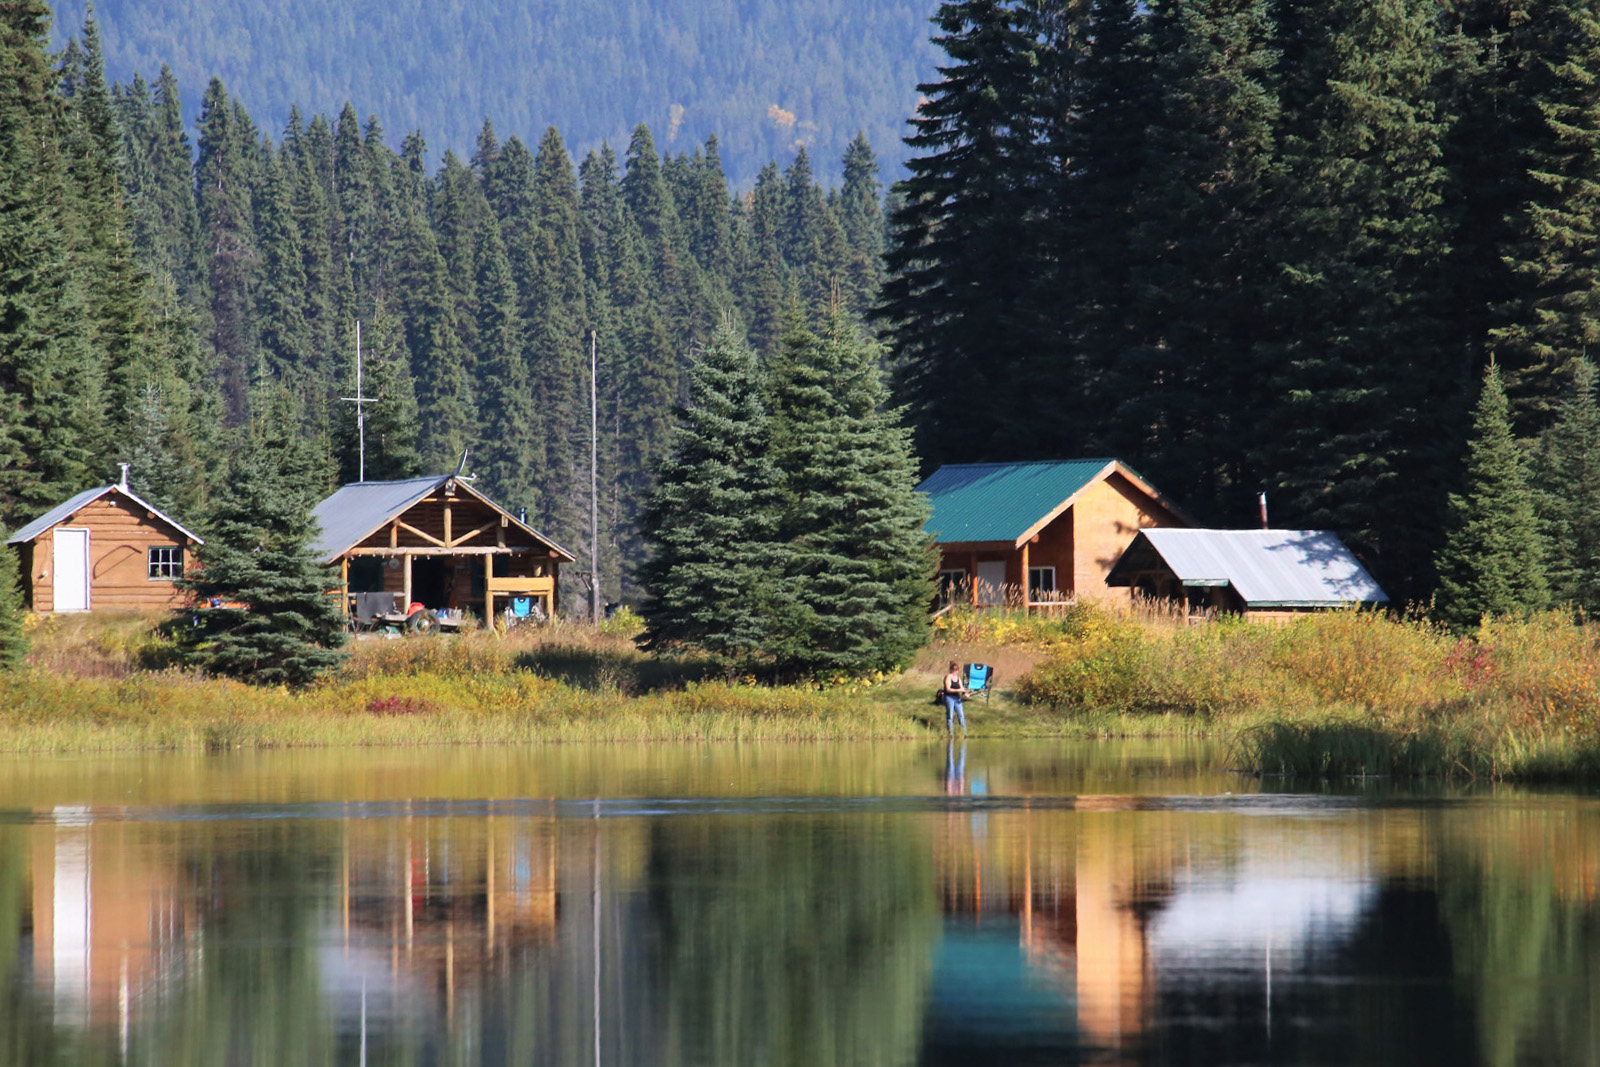 Dome creek outfitters 04